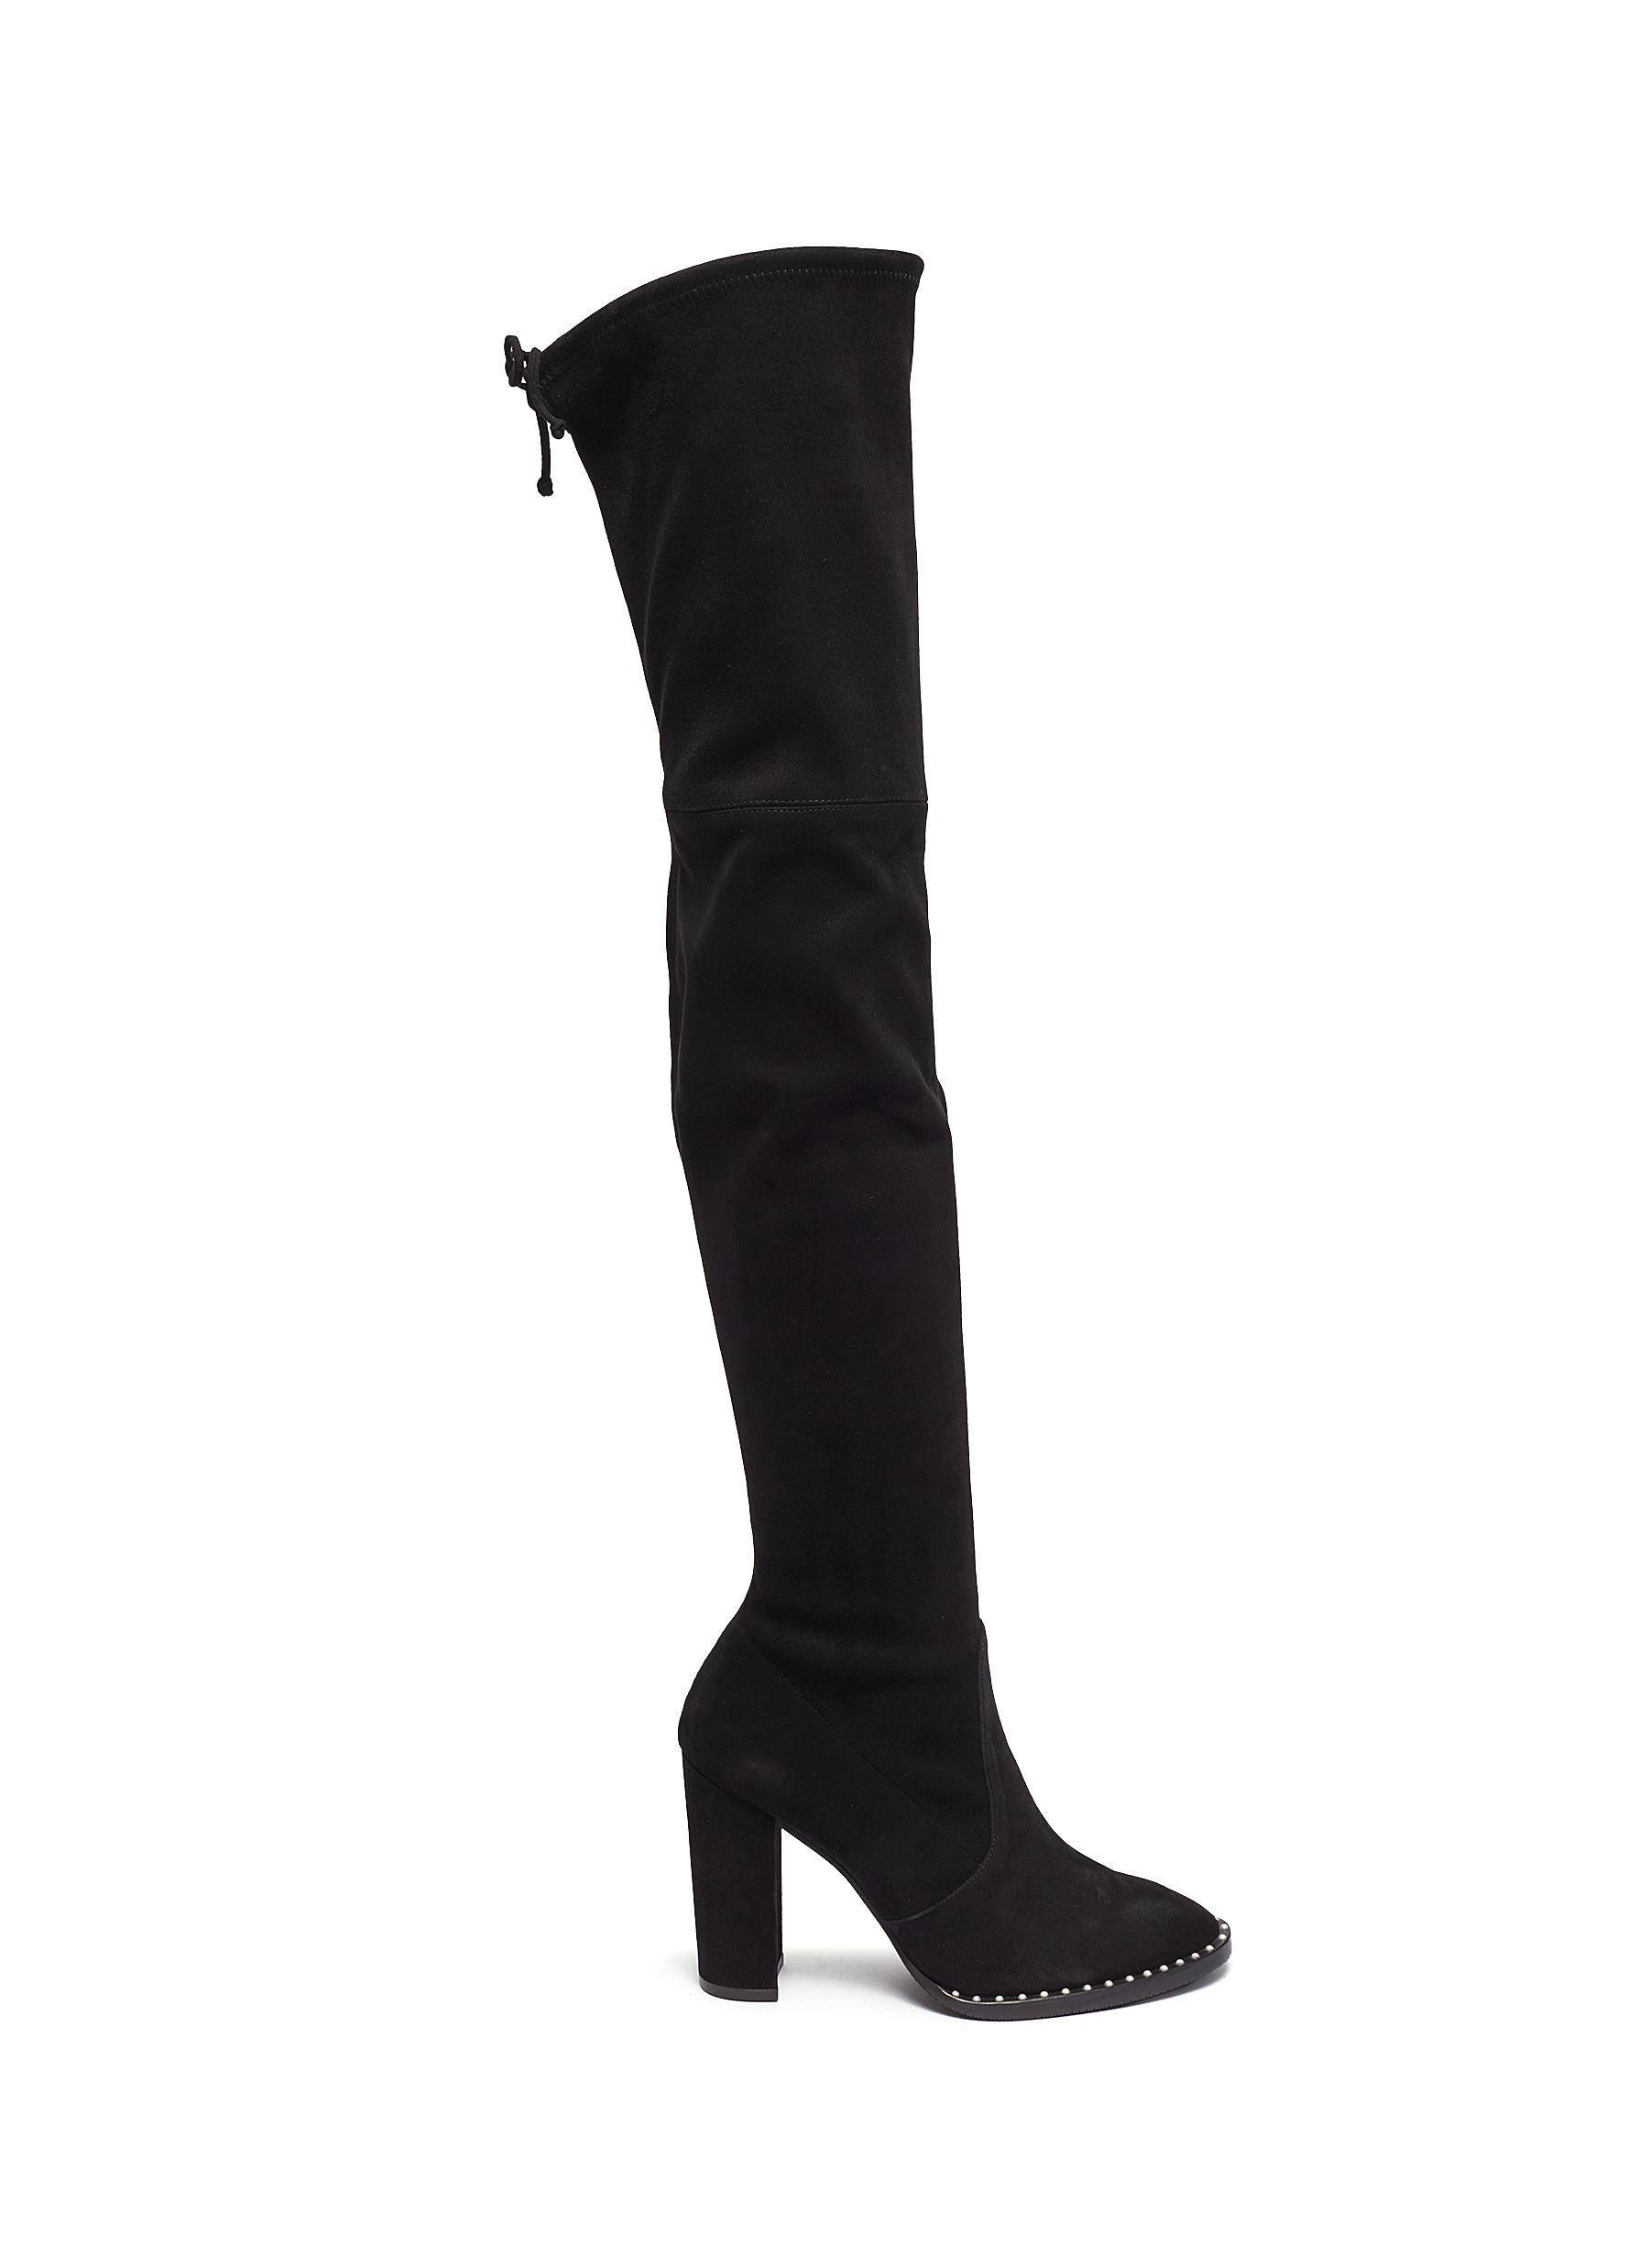 Winslet Pearl stretch suede thigh high boots by Stuart Weitzman